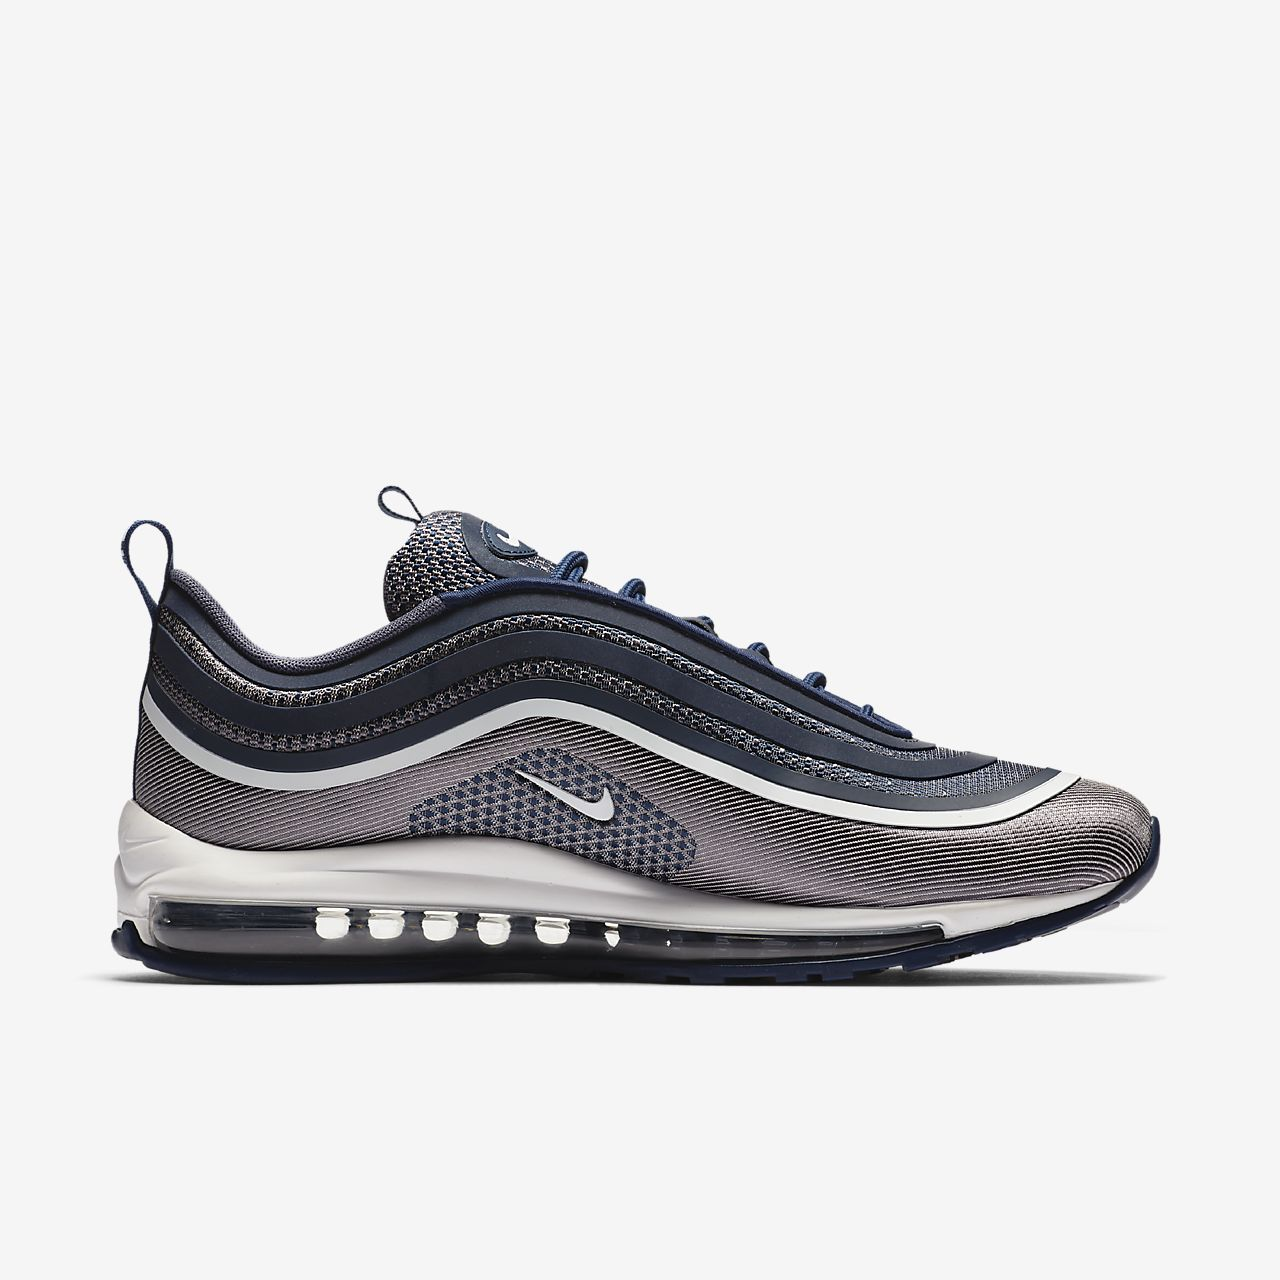 Nike Air Max 97 UL '17 Men's Running Shoes Silver/Red/Black